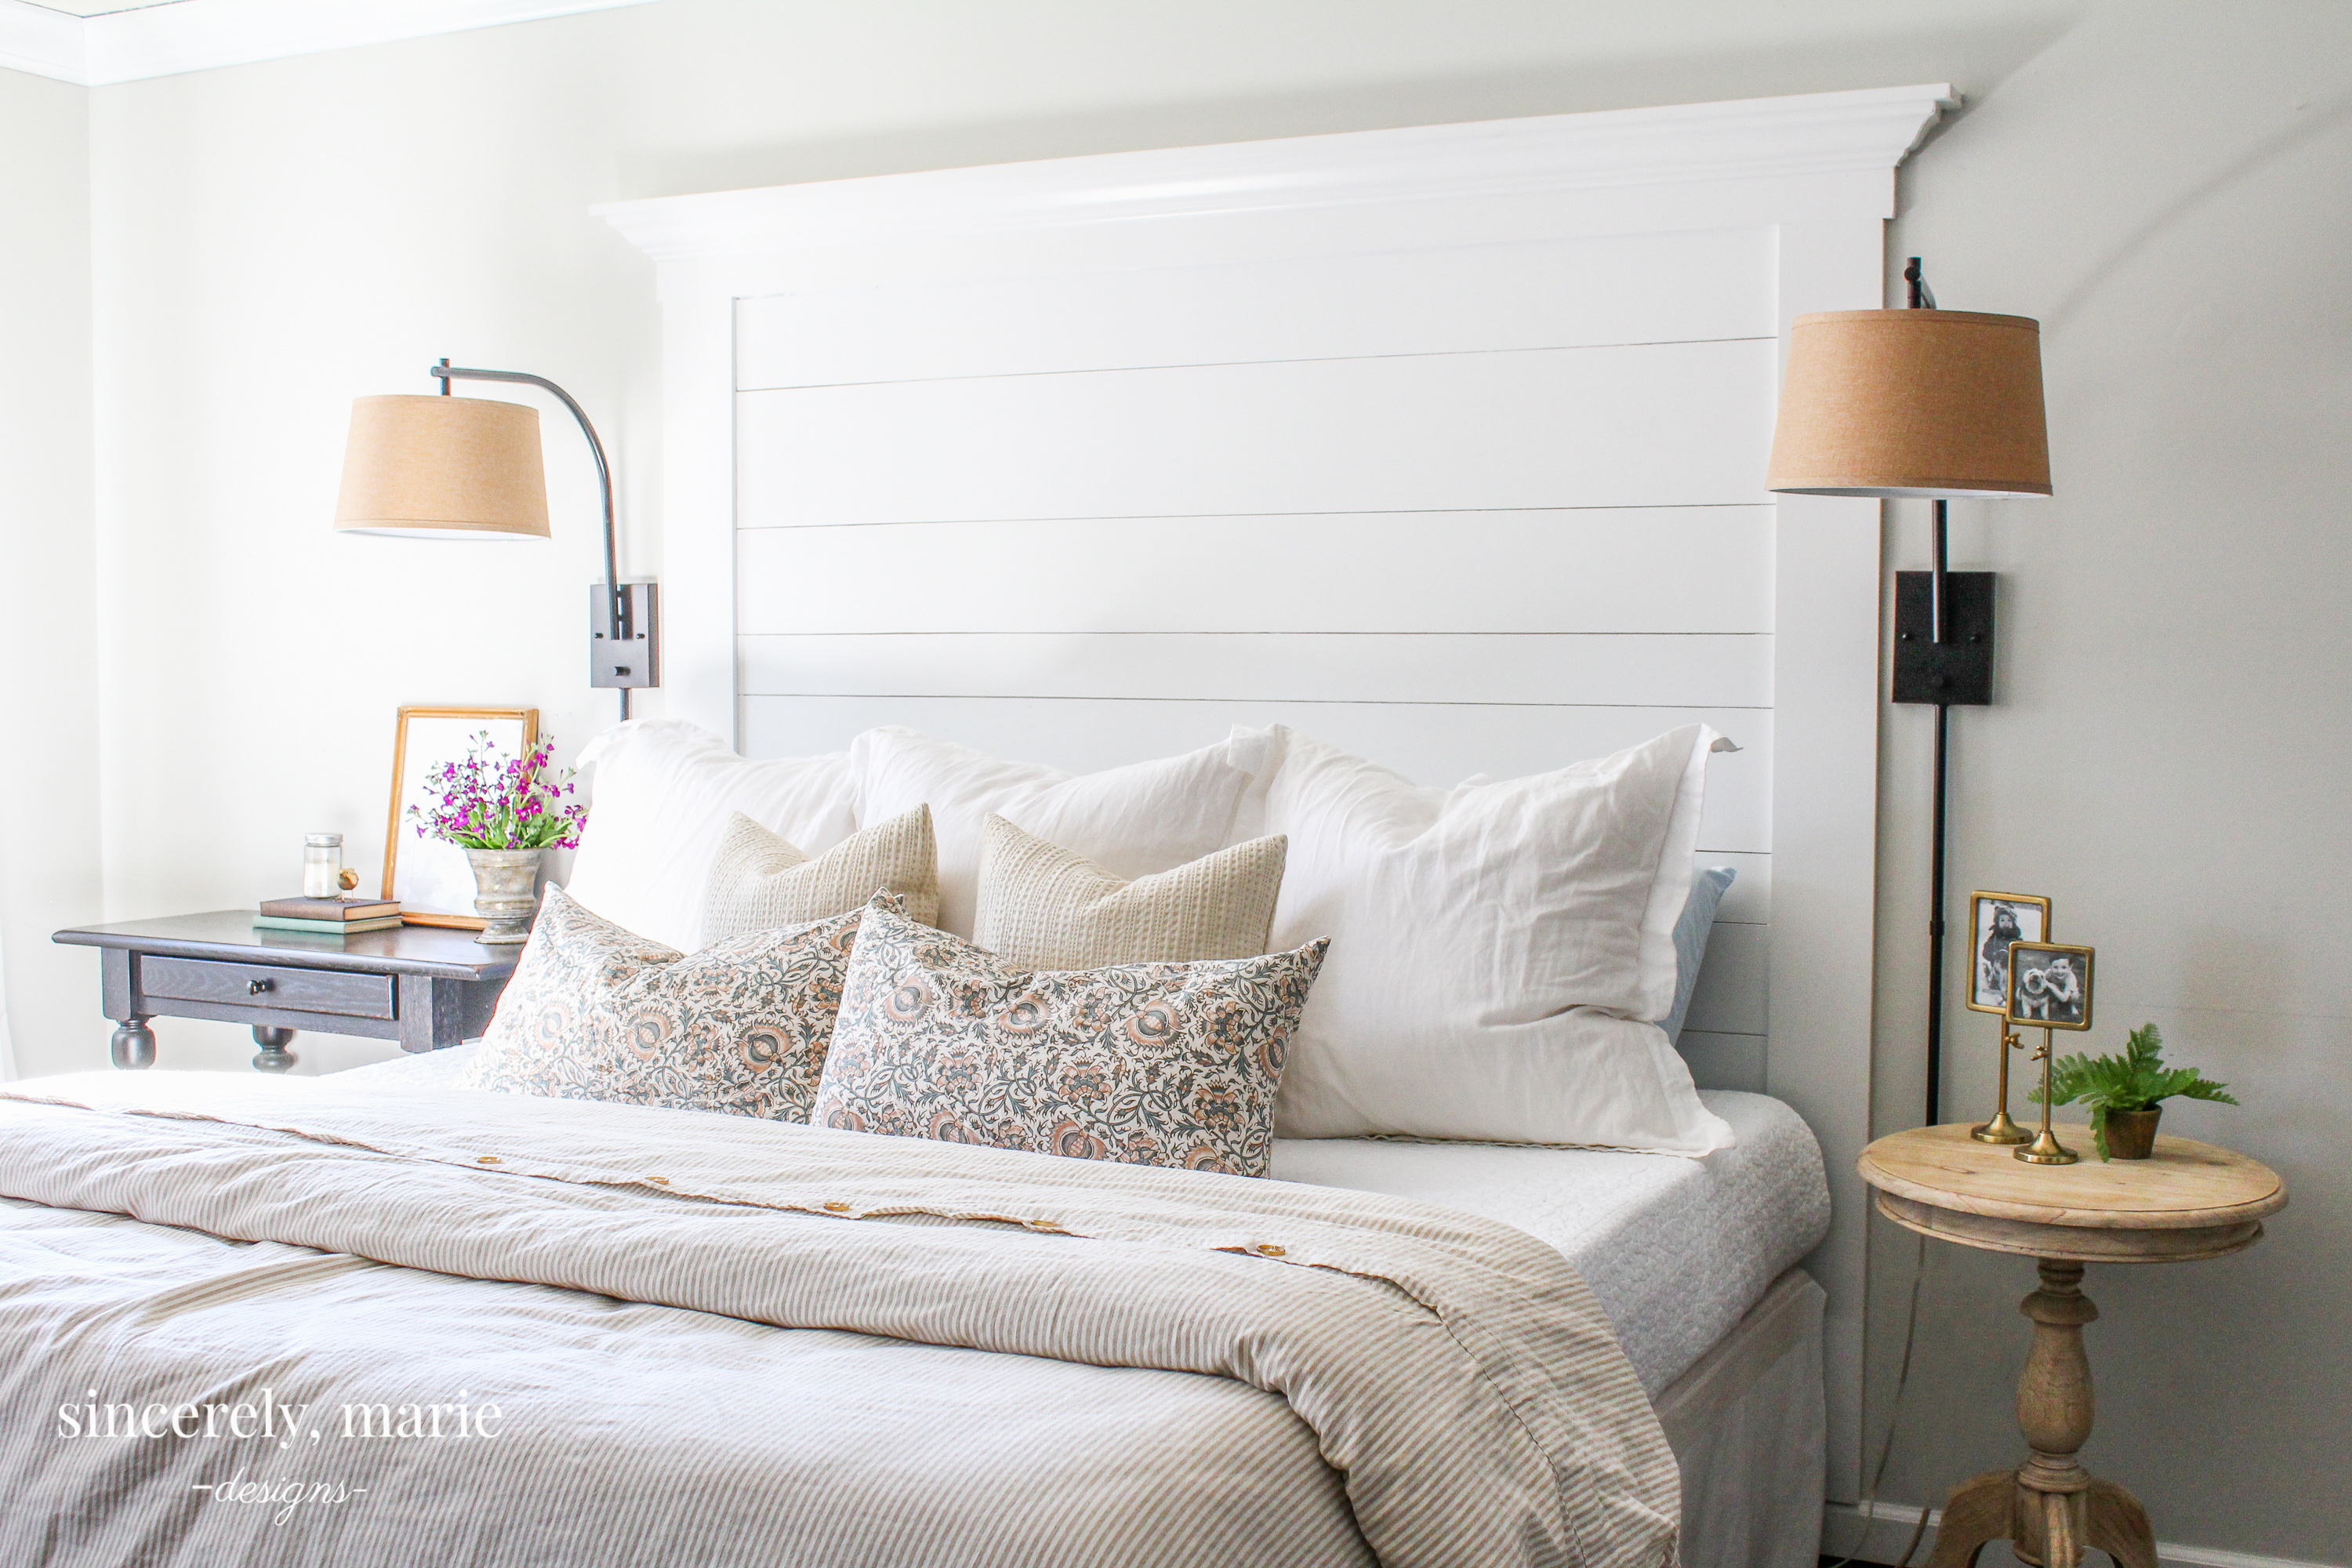 Diy Farmhouse Planked Headboard Sincerely Marie Designs